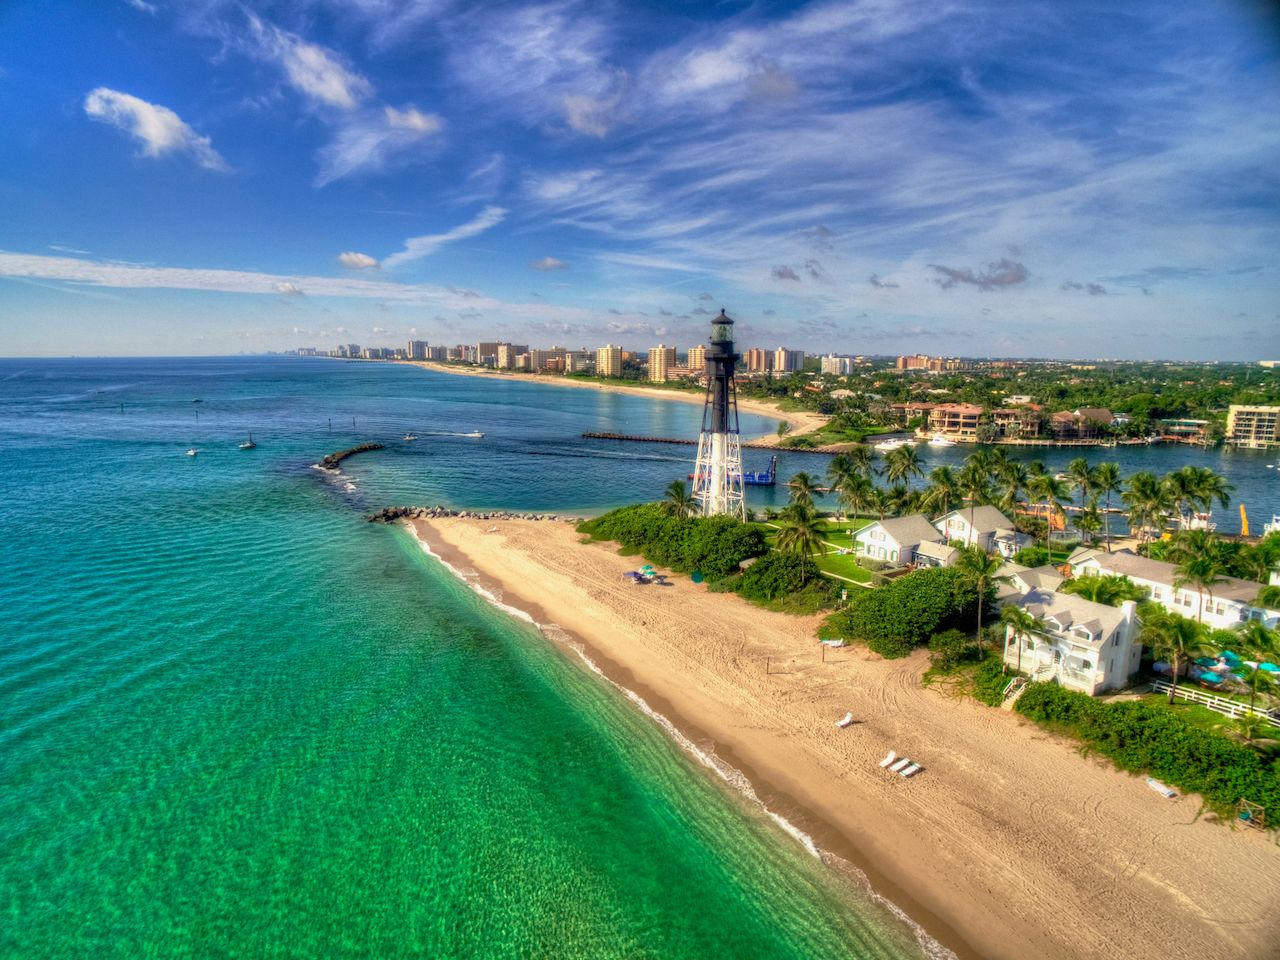 Fort Lauderdale lighthouse and emerald water on the coast